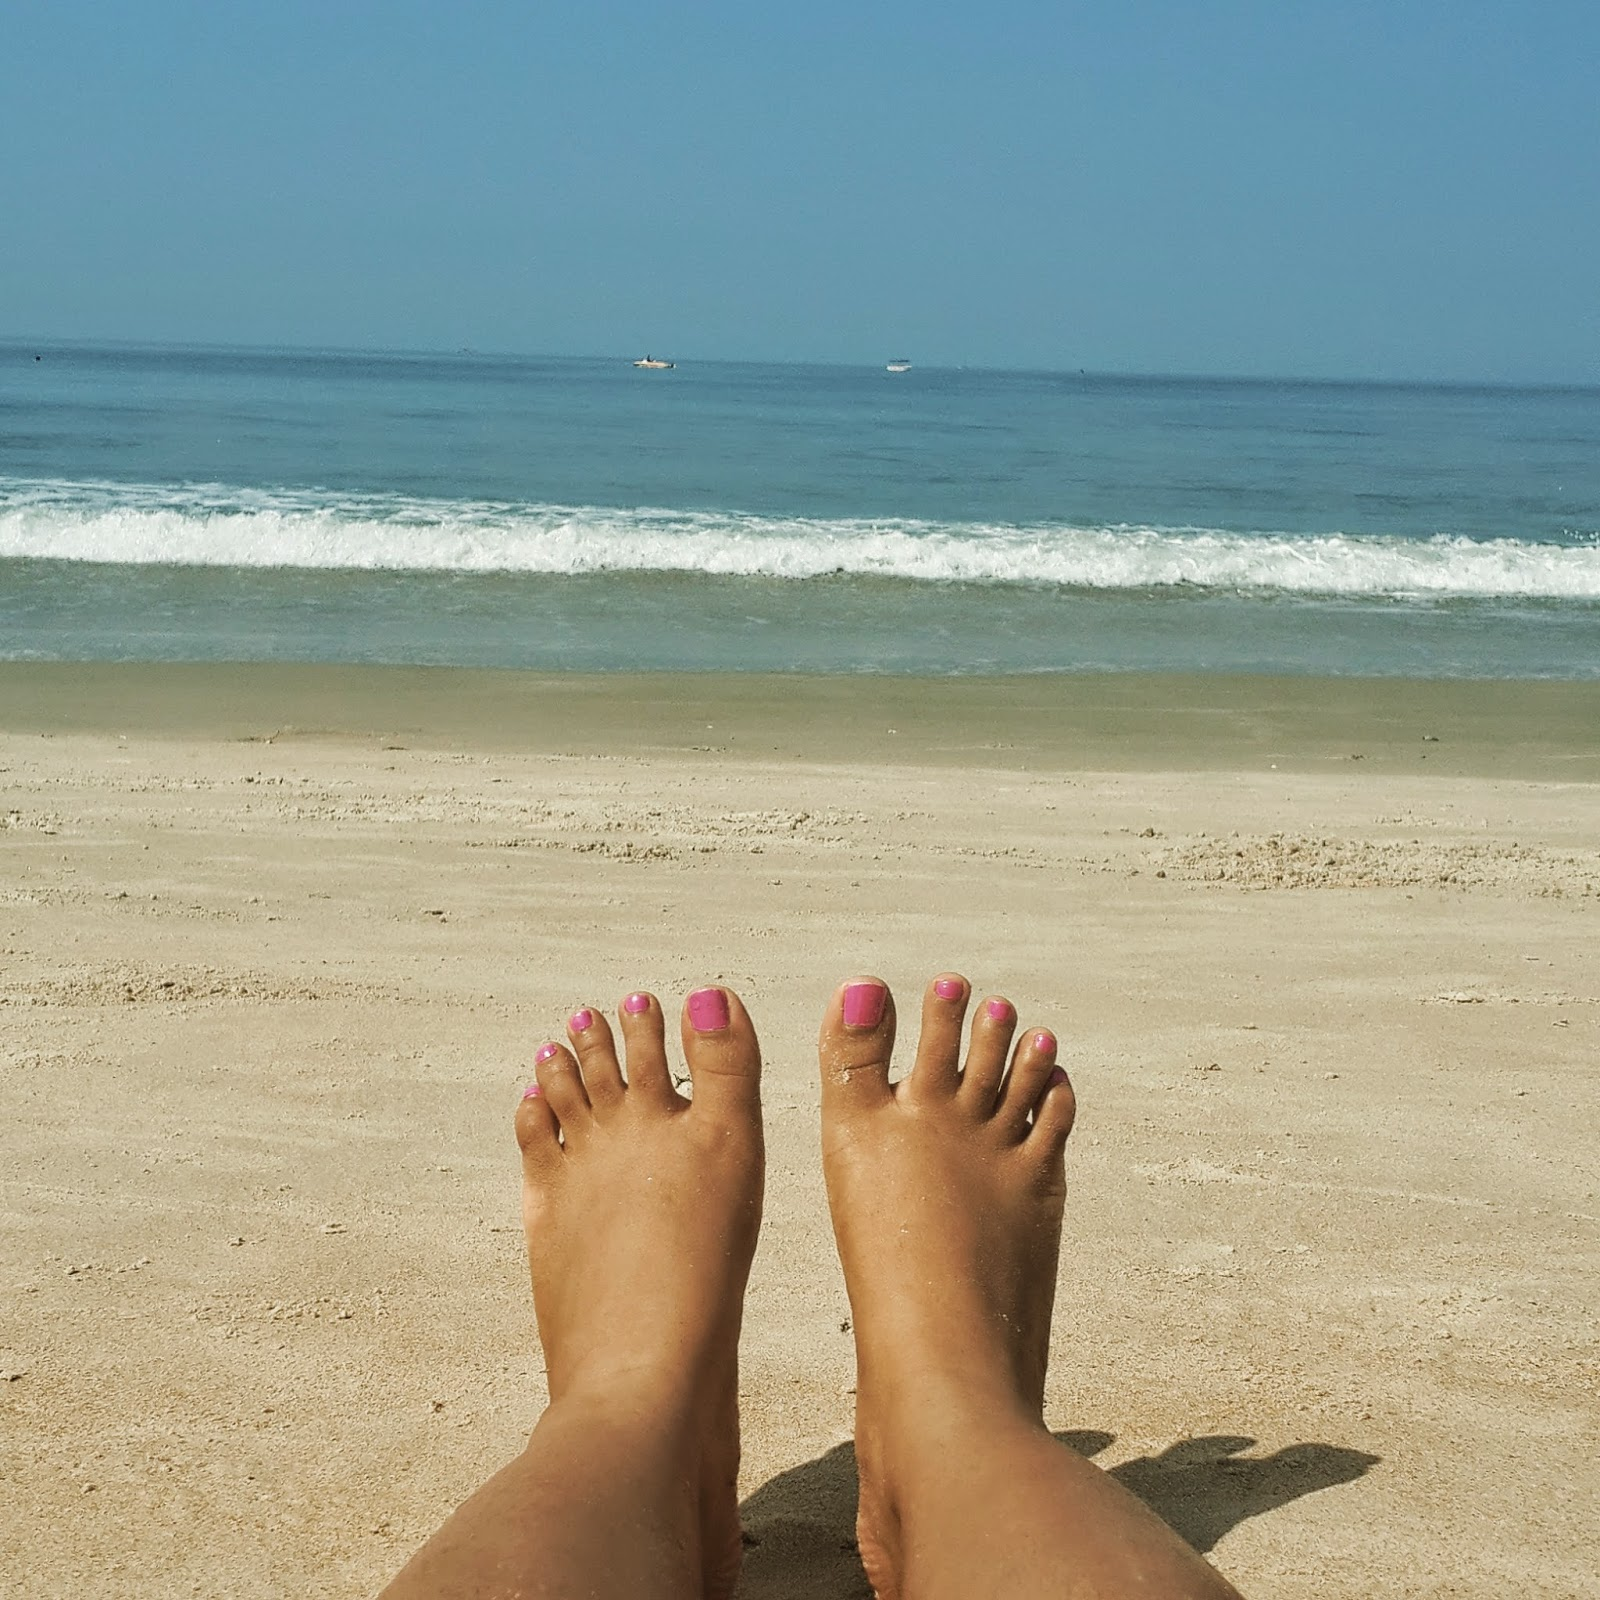 beach, sand, water, shore, feet, nails, pink, goa, sunshine, waves, beach days, vacation, relax, holiday